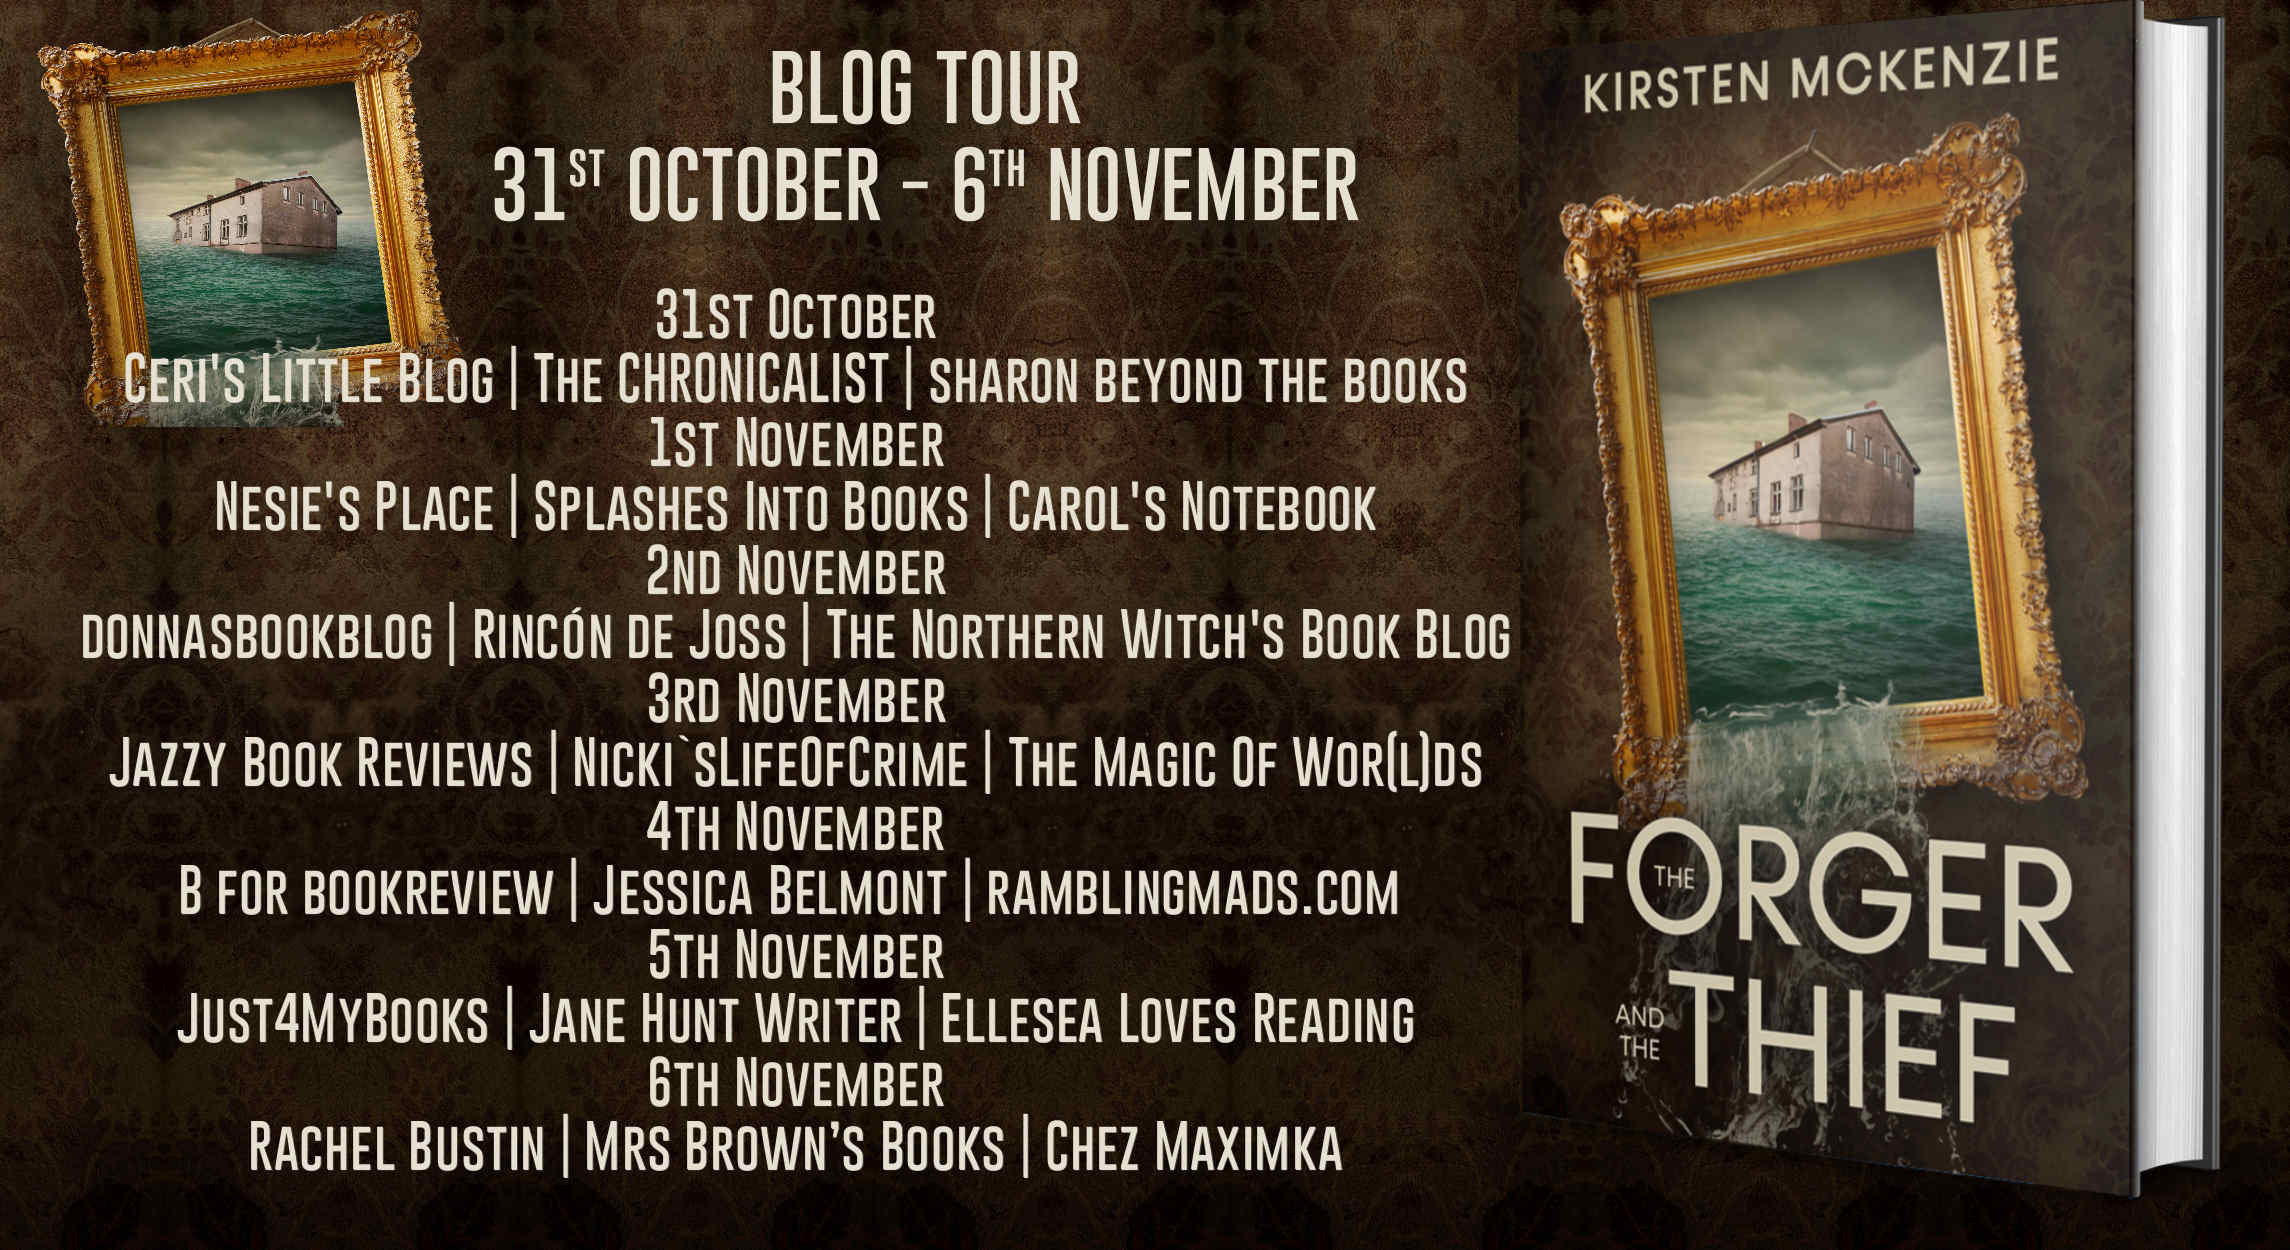 The Forger and the Thief by Kirsten McKenzie